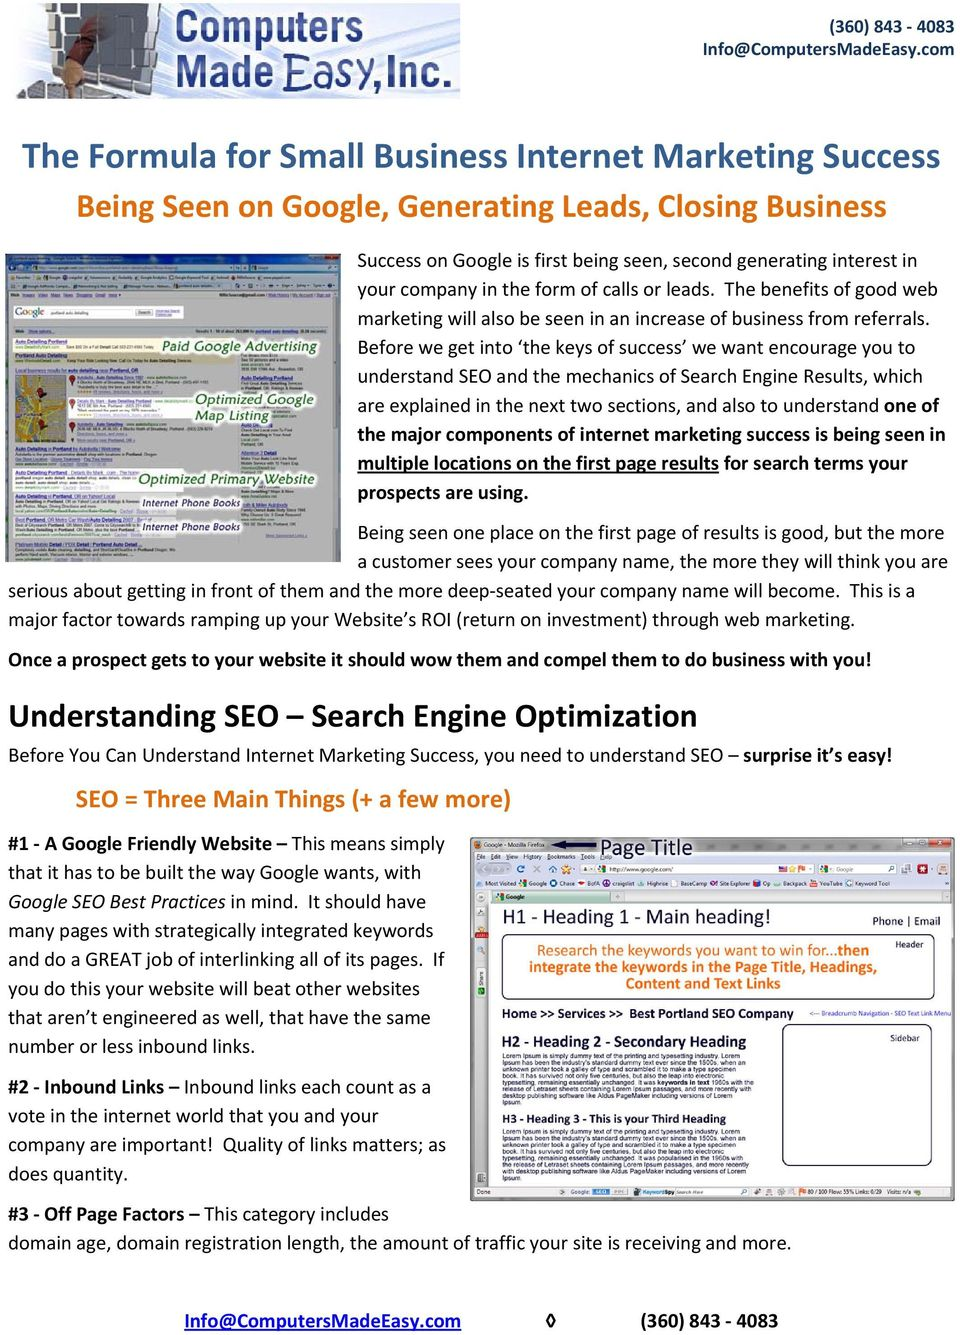 Before we get into the keys of success we want encourage you to understand SEO and the mechanics of Search Engine Results, which are explained in the next two sections, and also to understand one of